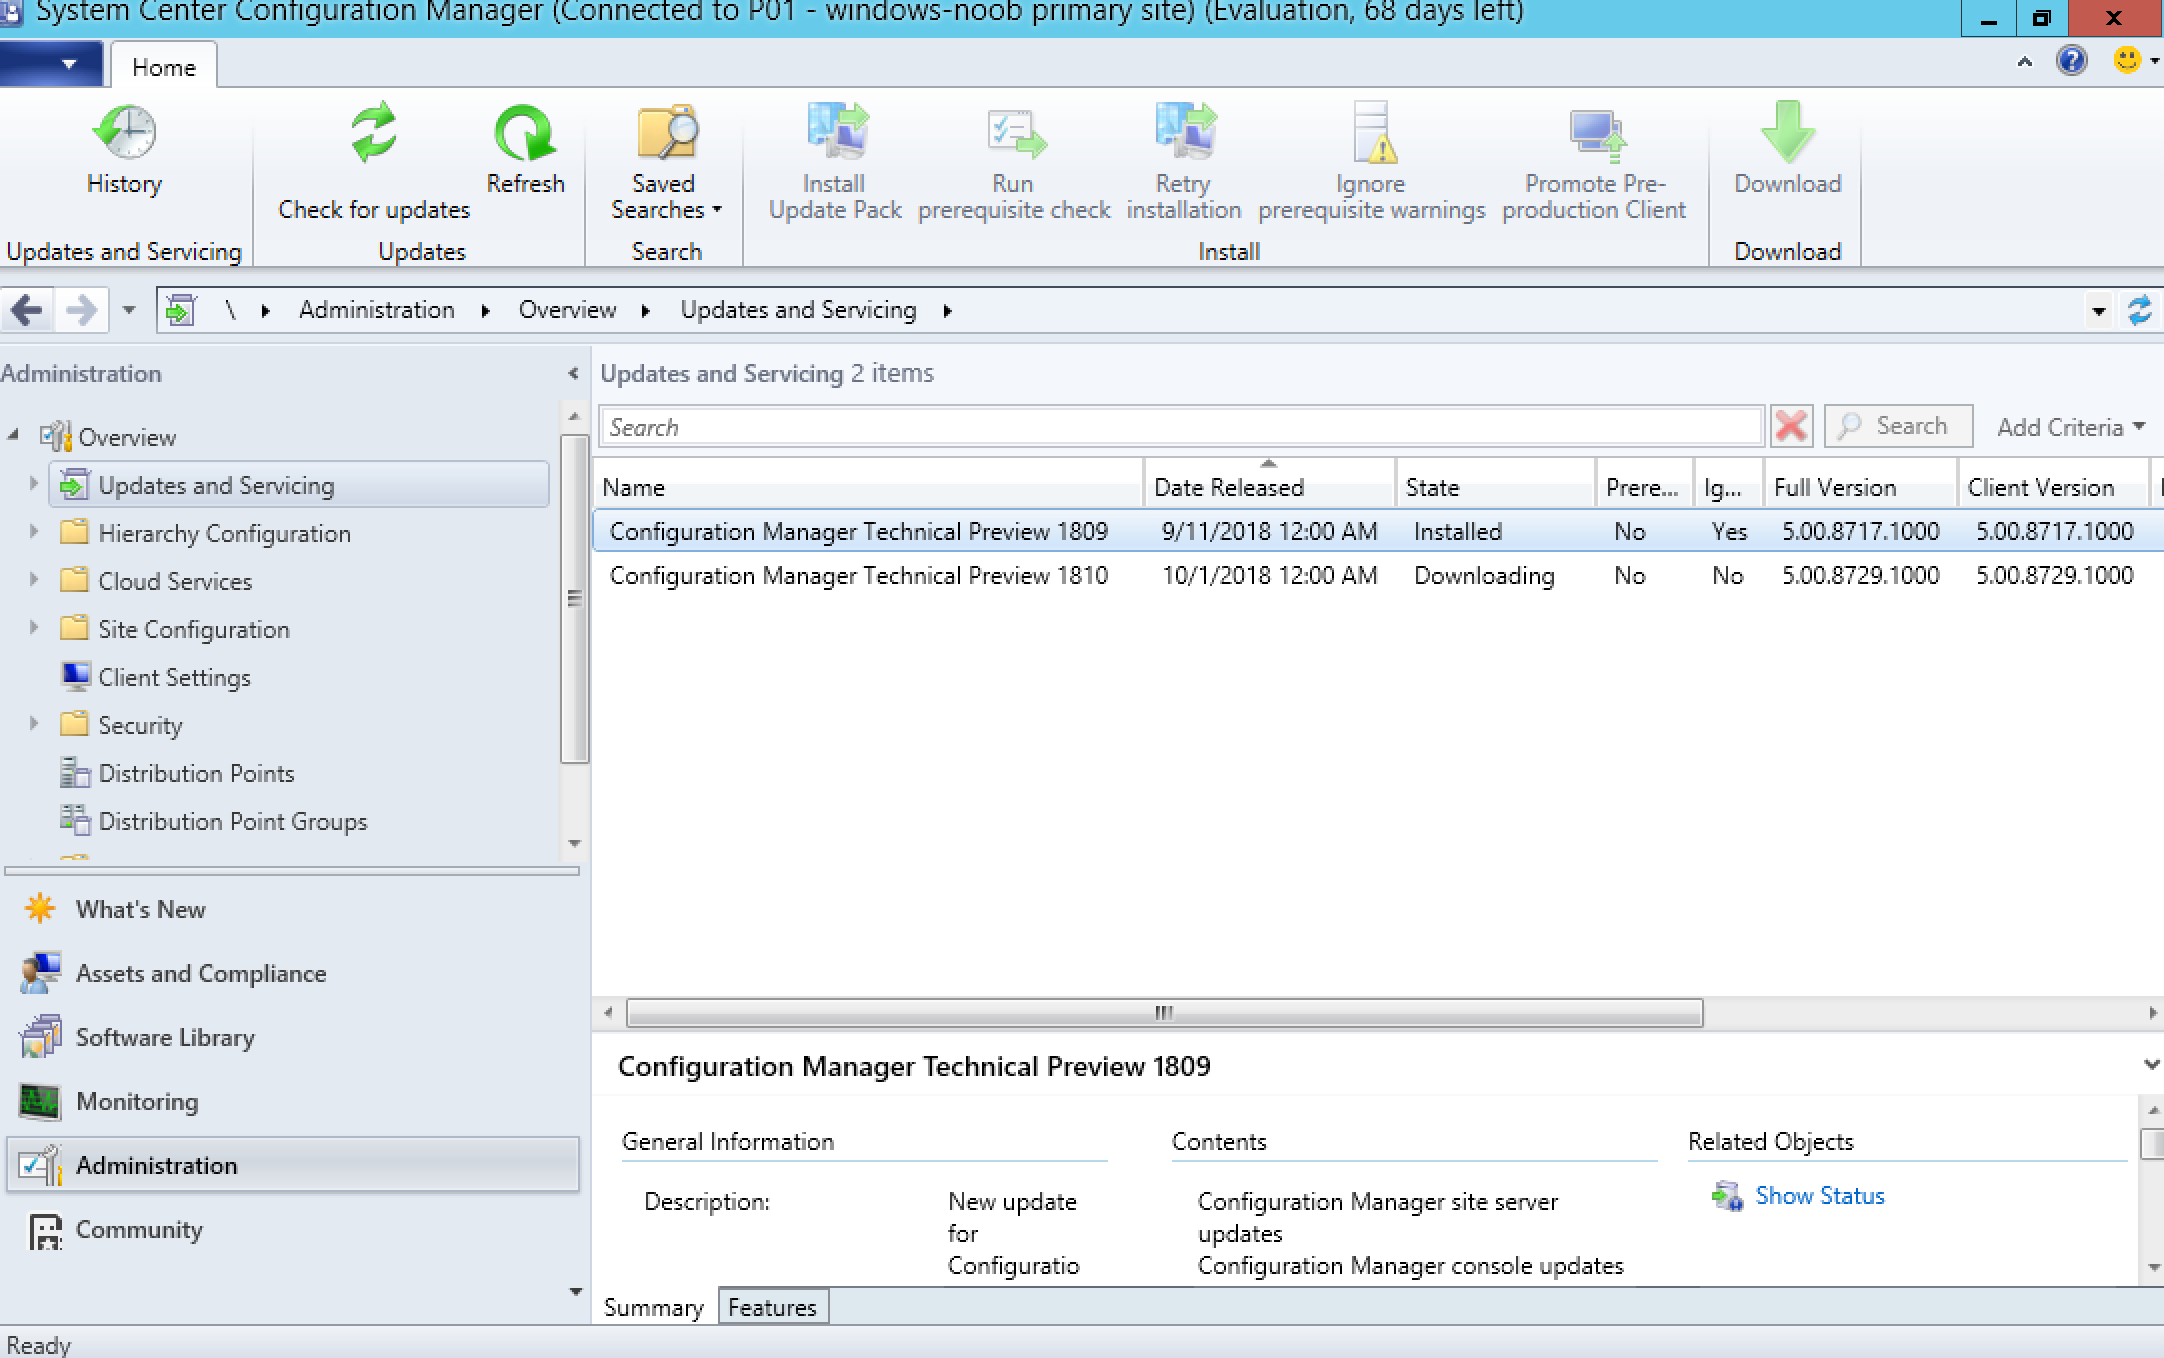 A quick look at System Center Configuration Manager